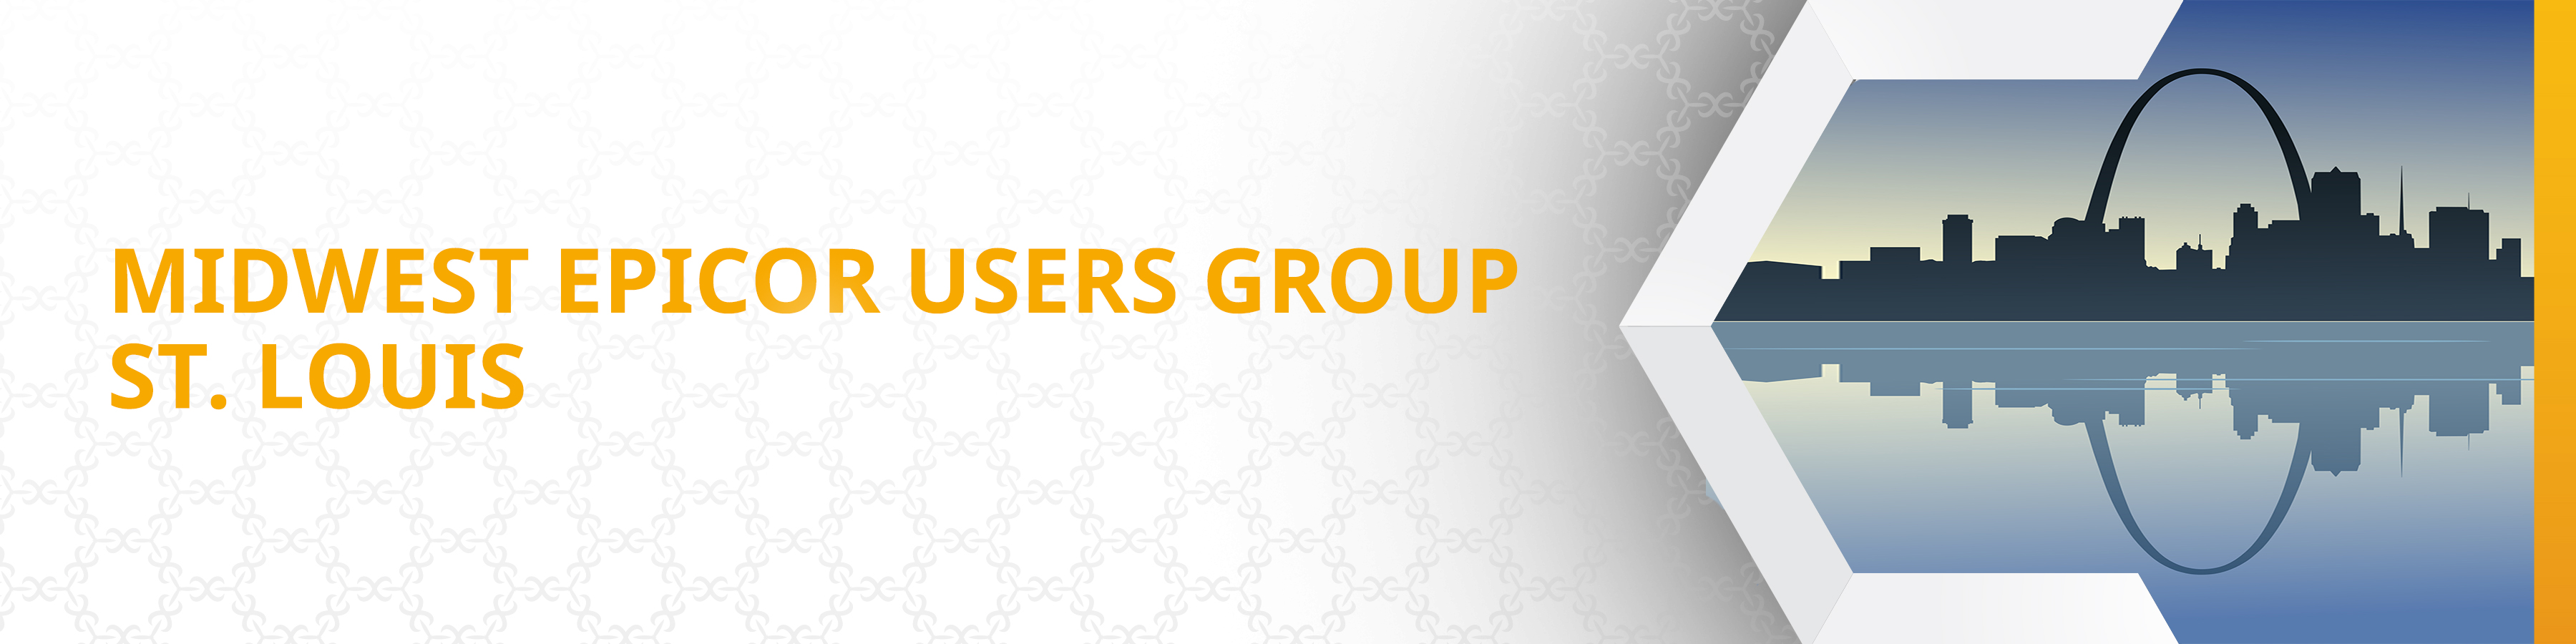 midest-epicor-users-group-header